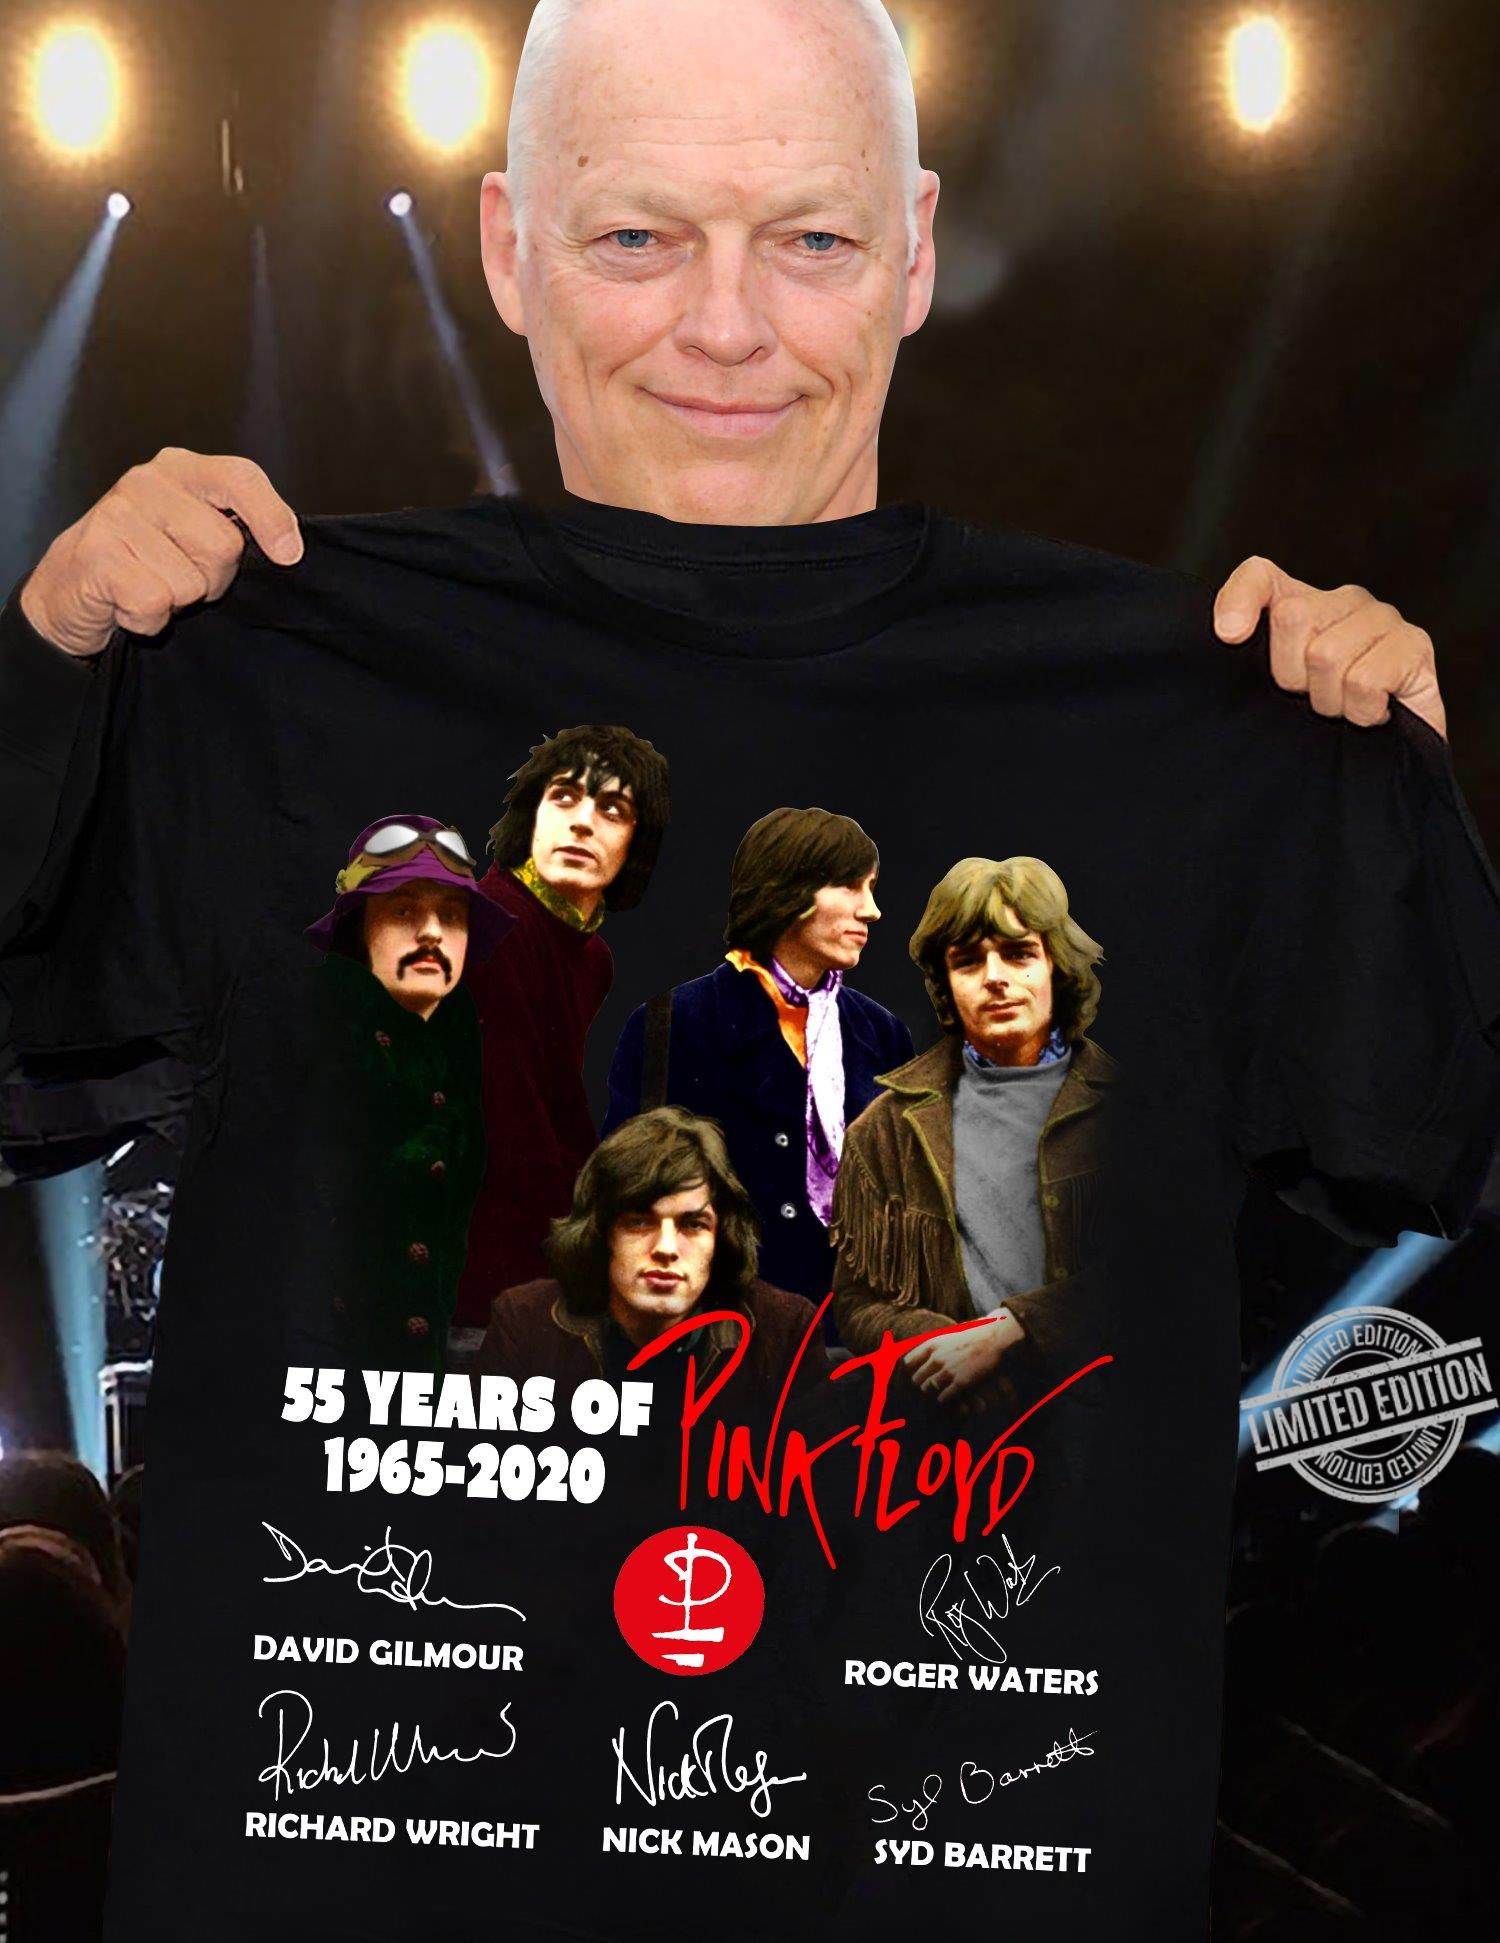 55 Years Of 1965-2020 Charaters Of Pink Flord Signatures Shirt